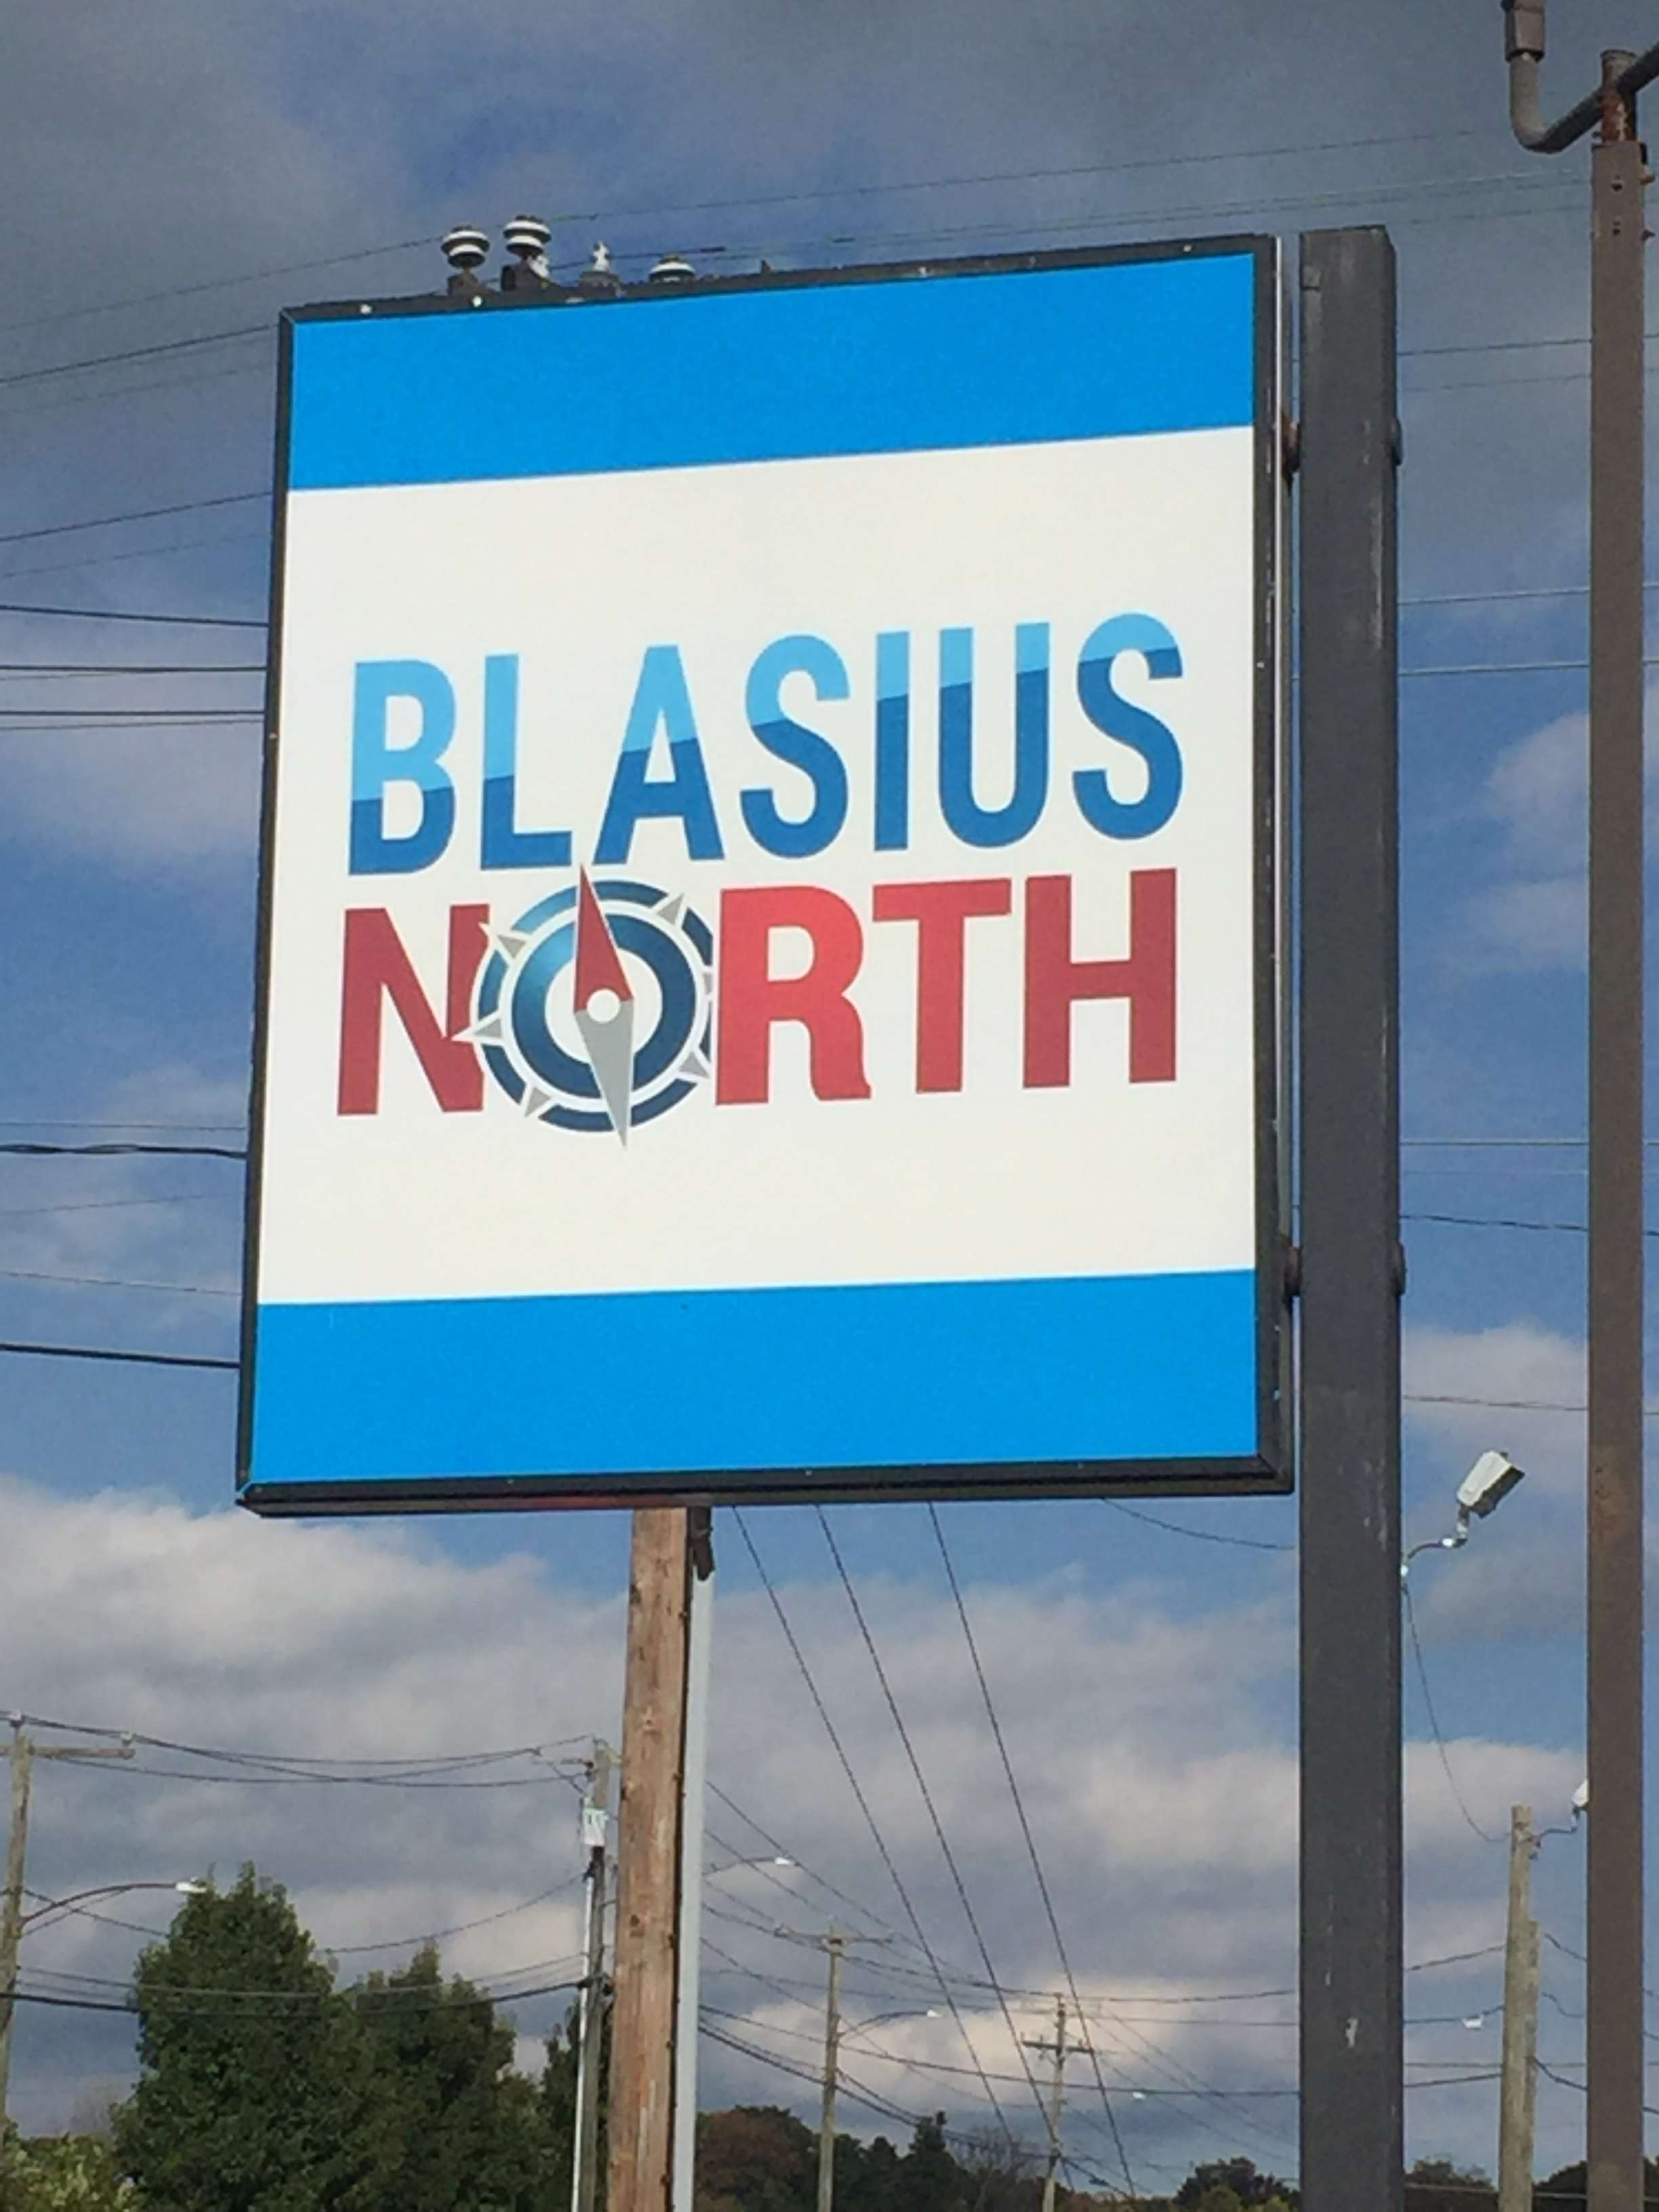 Blasius North Building